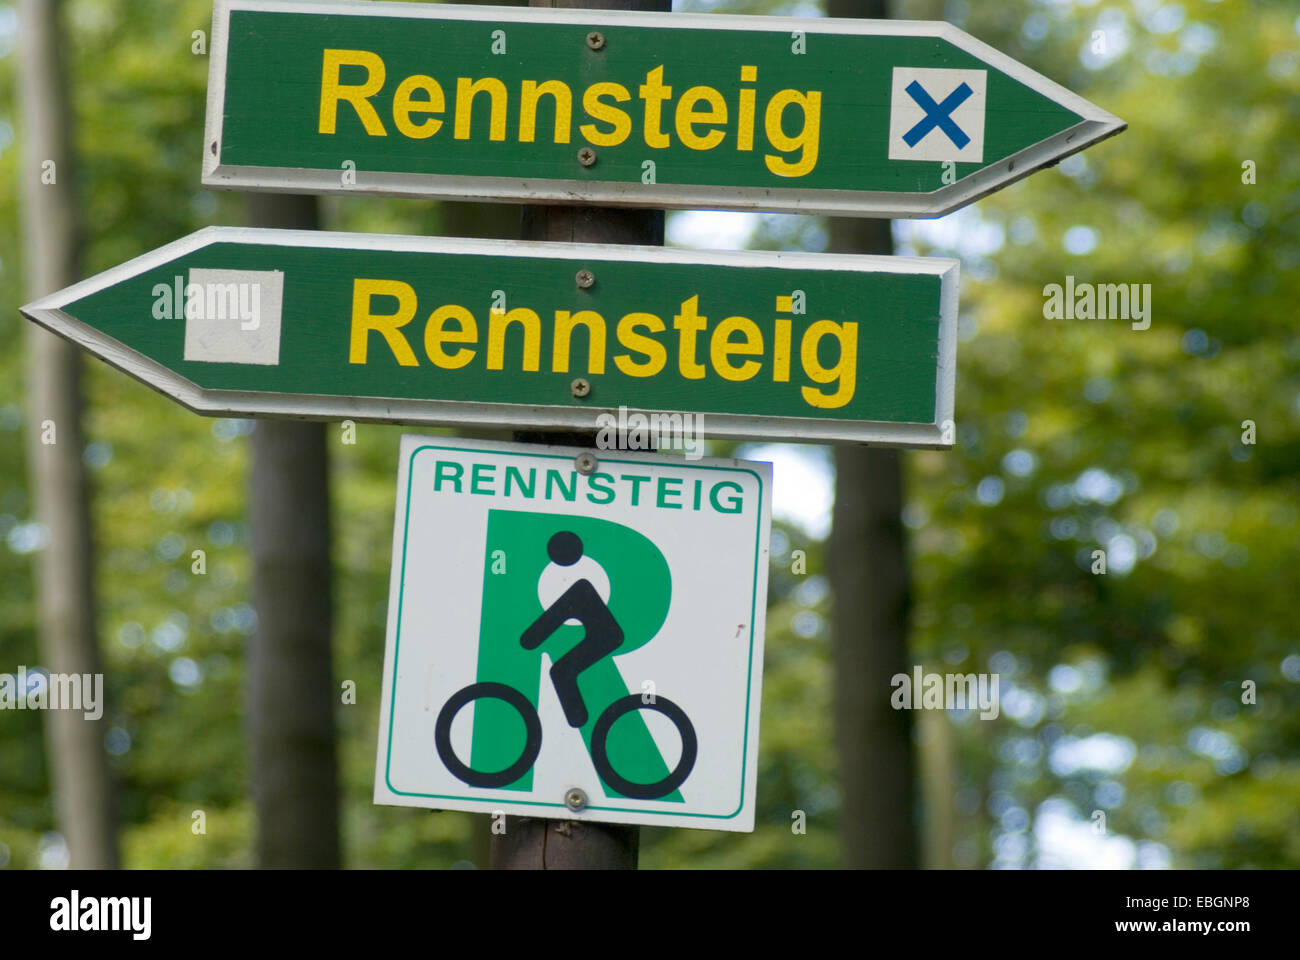 signboards to hiking trail, Germany, Thueringen, Rennsteig - Stock Image